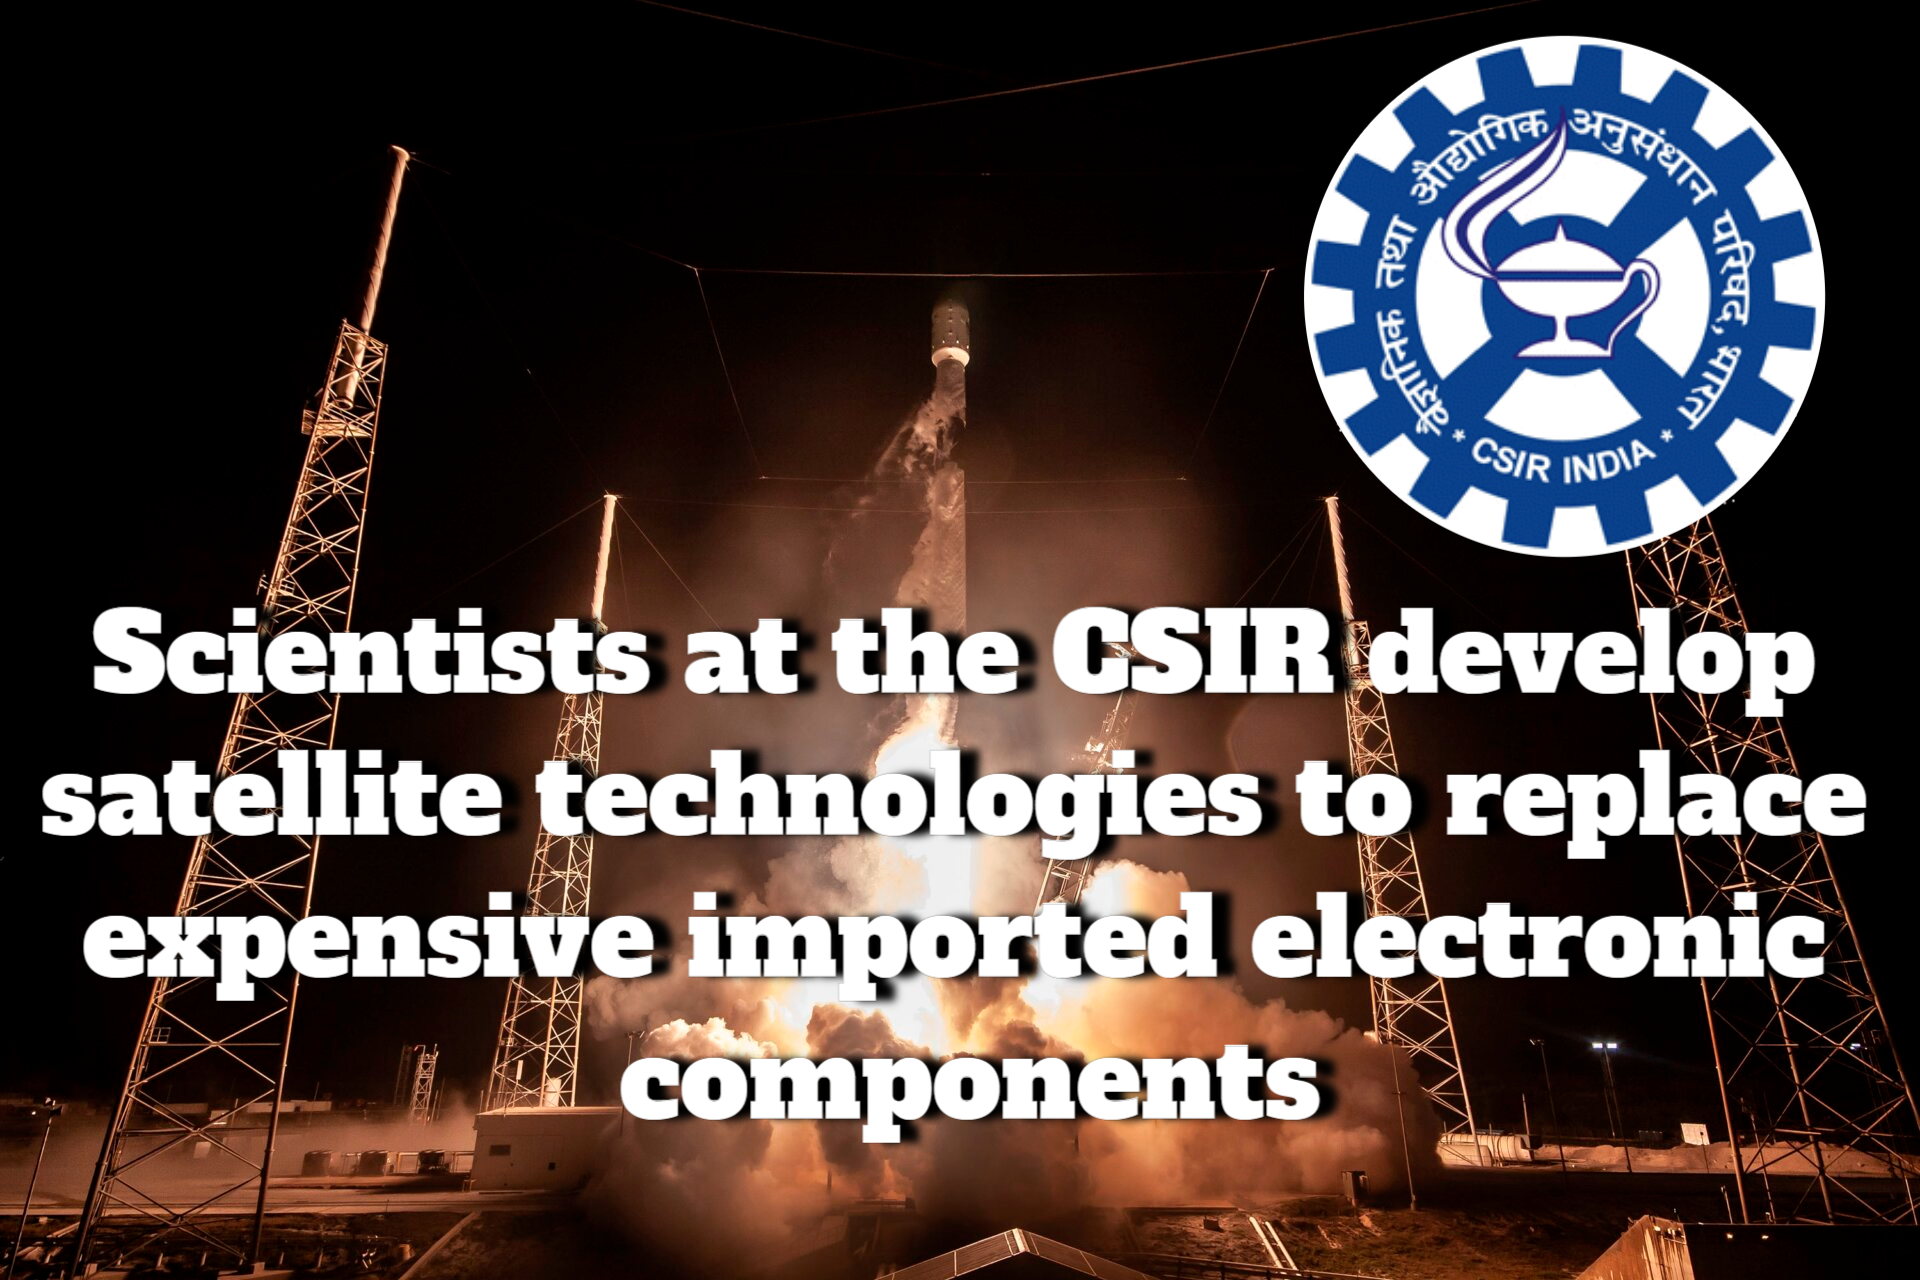 CSIR develops technology for satellites to replace expensive imported electronics